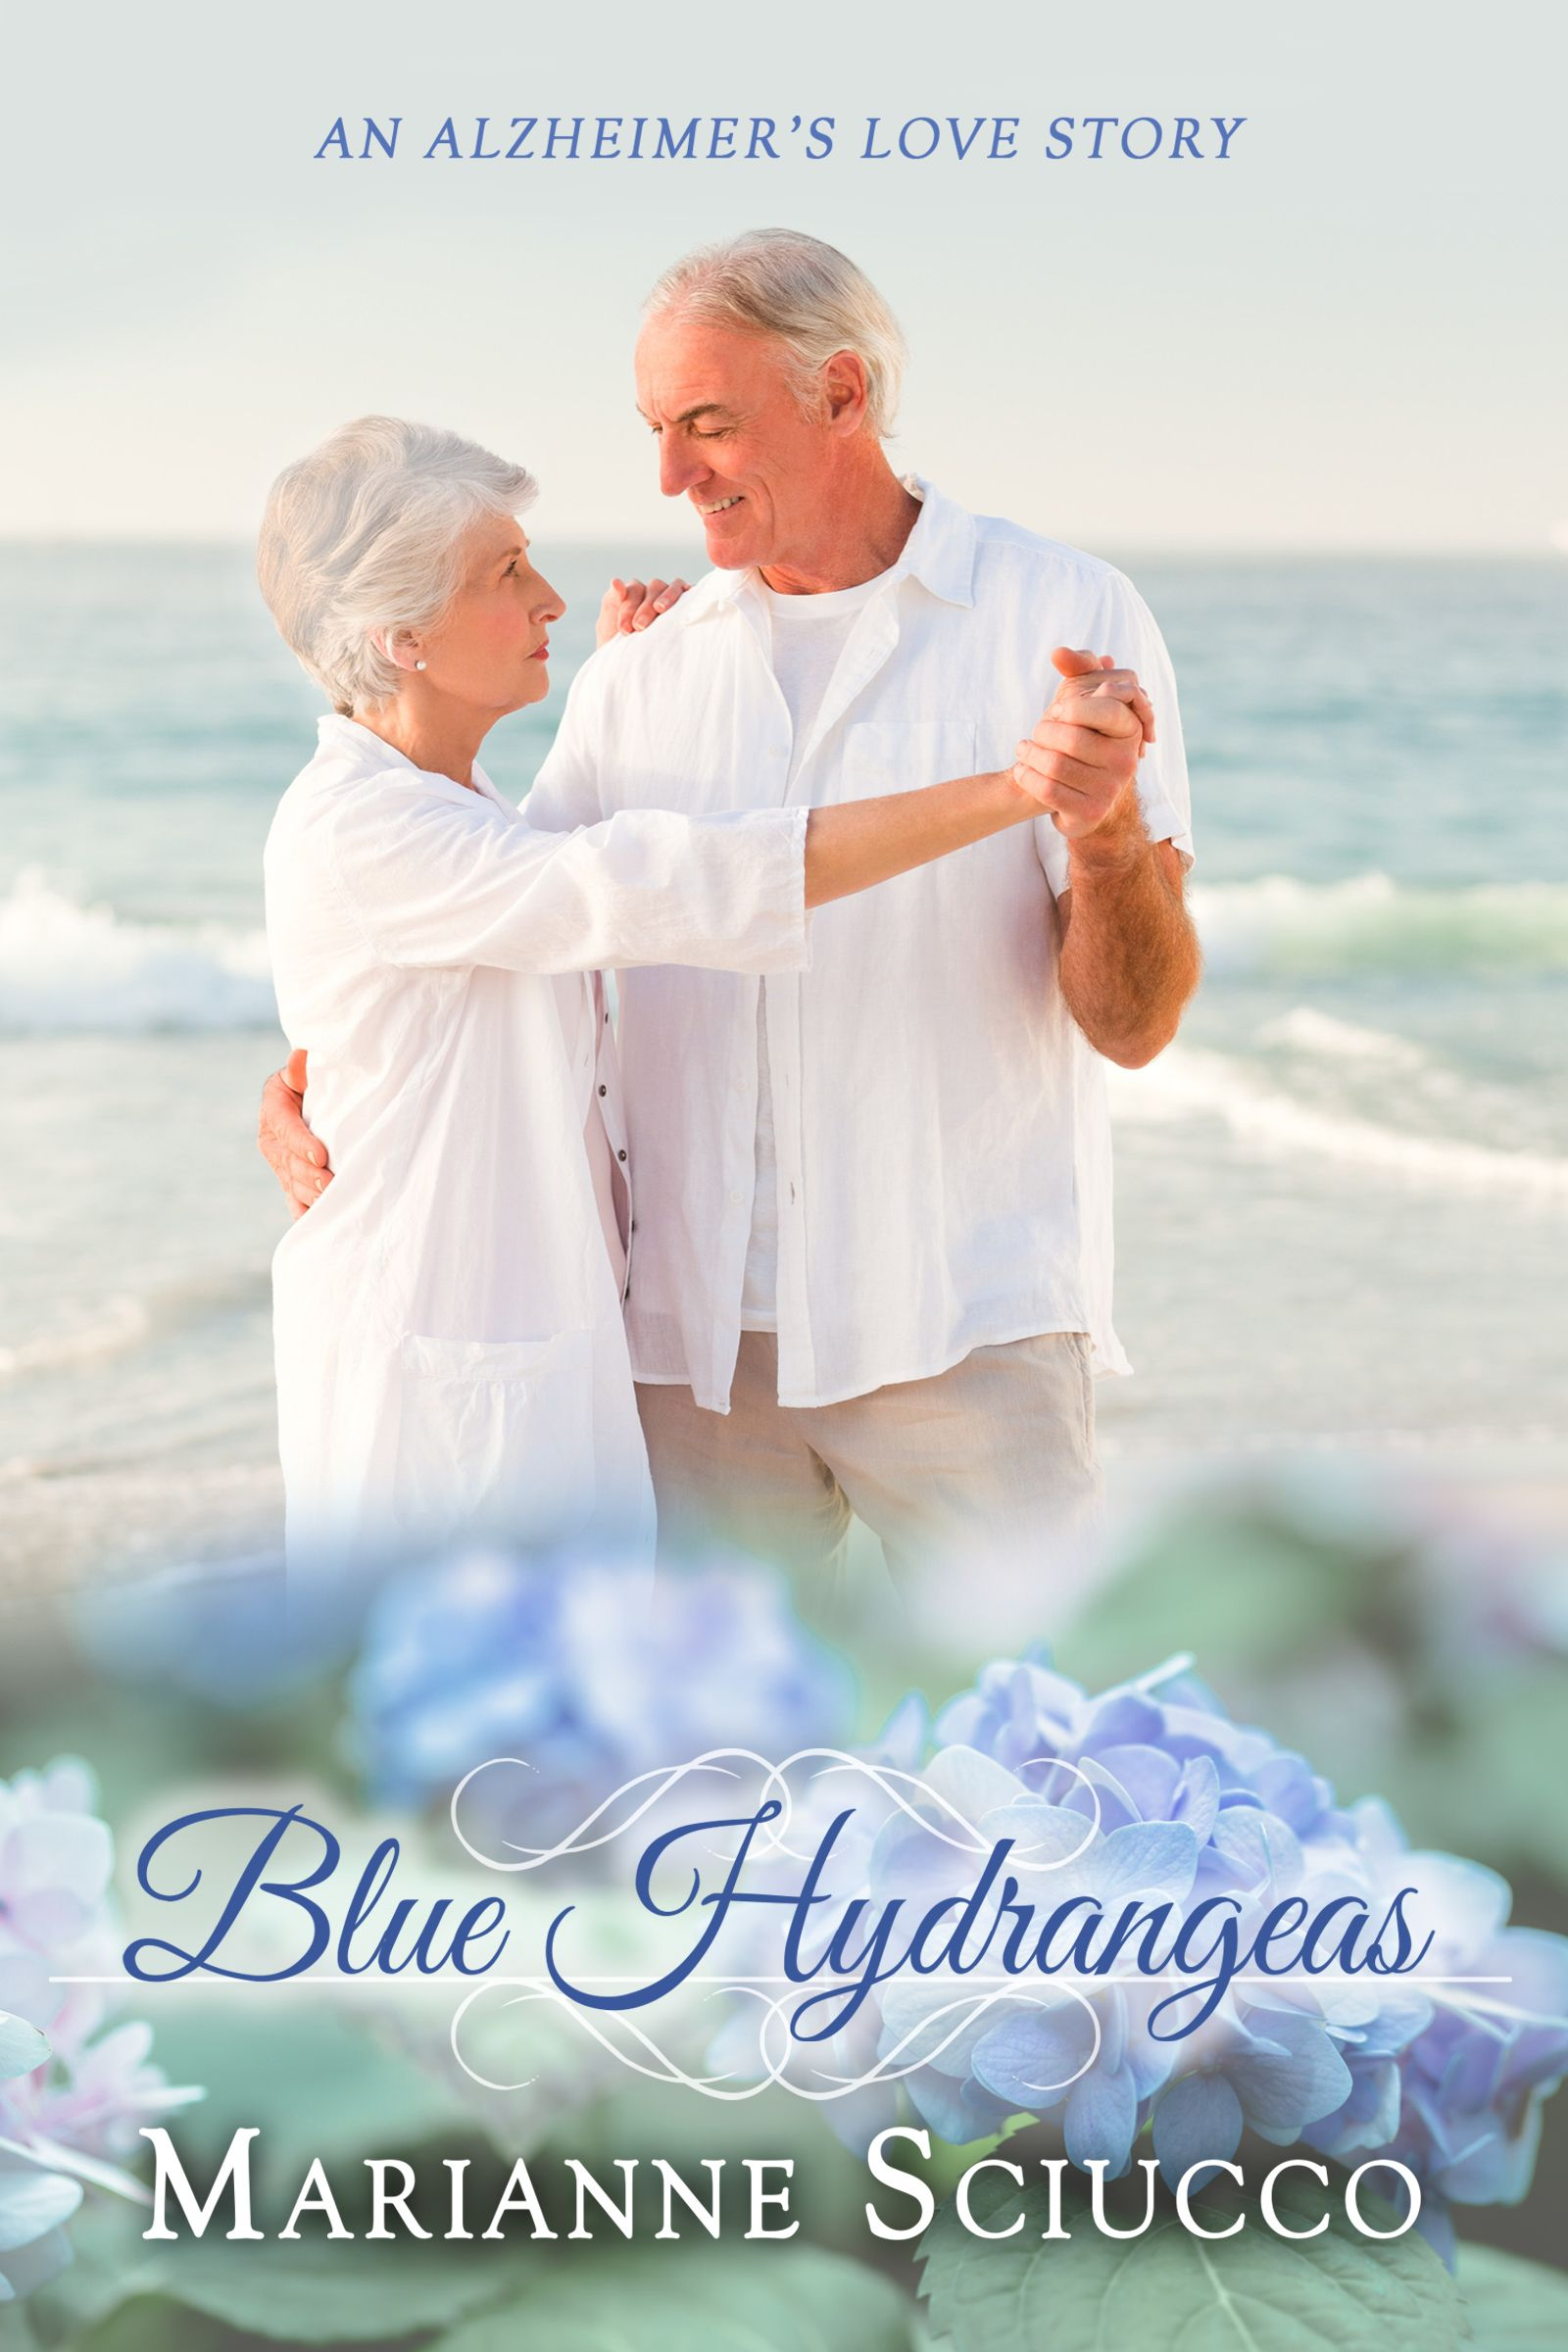 Read the #excerpt from author Marianne Sciucco's Alzheimer's love story, BLUE HYDRANGEAS